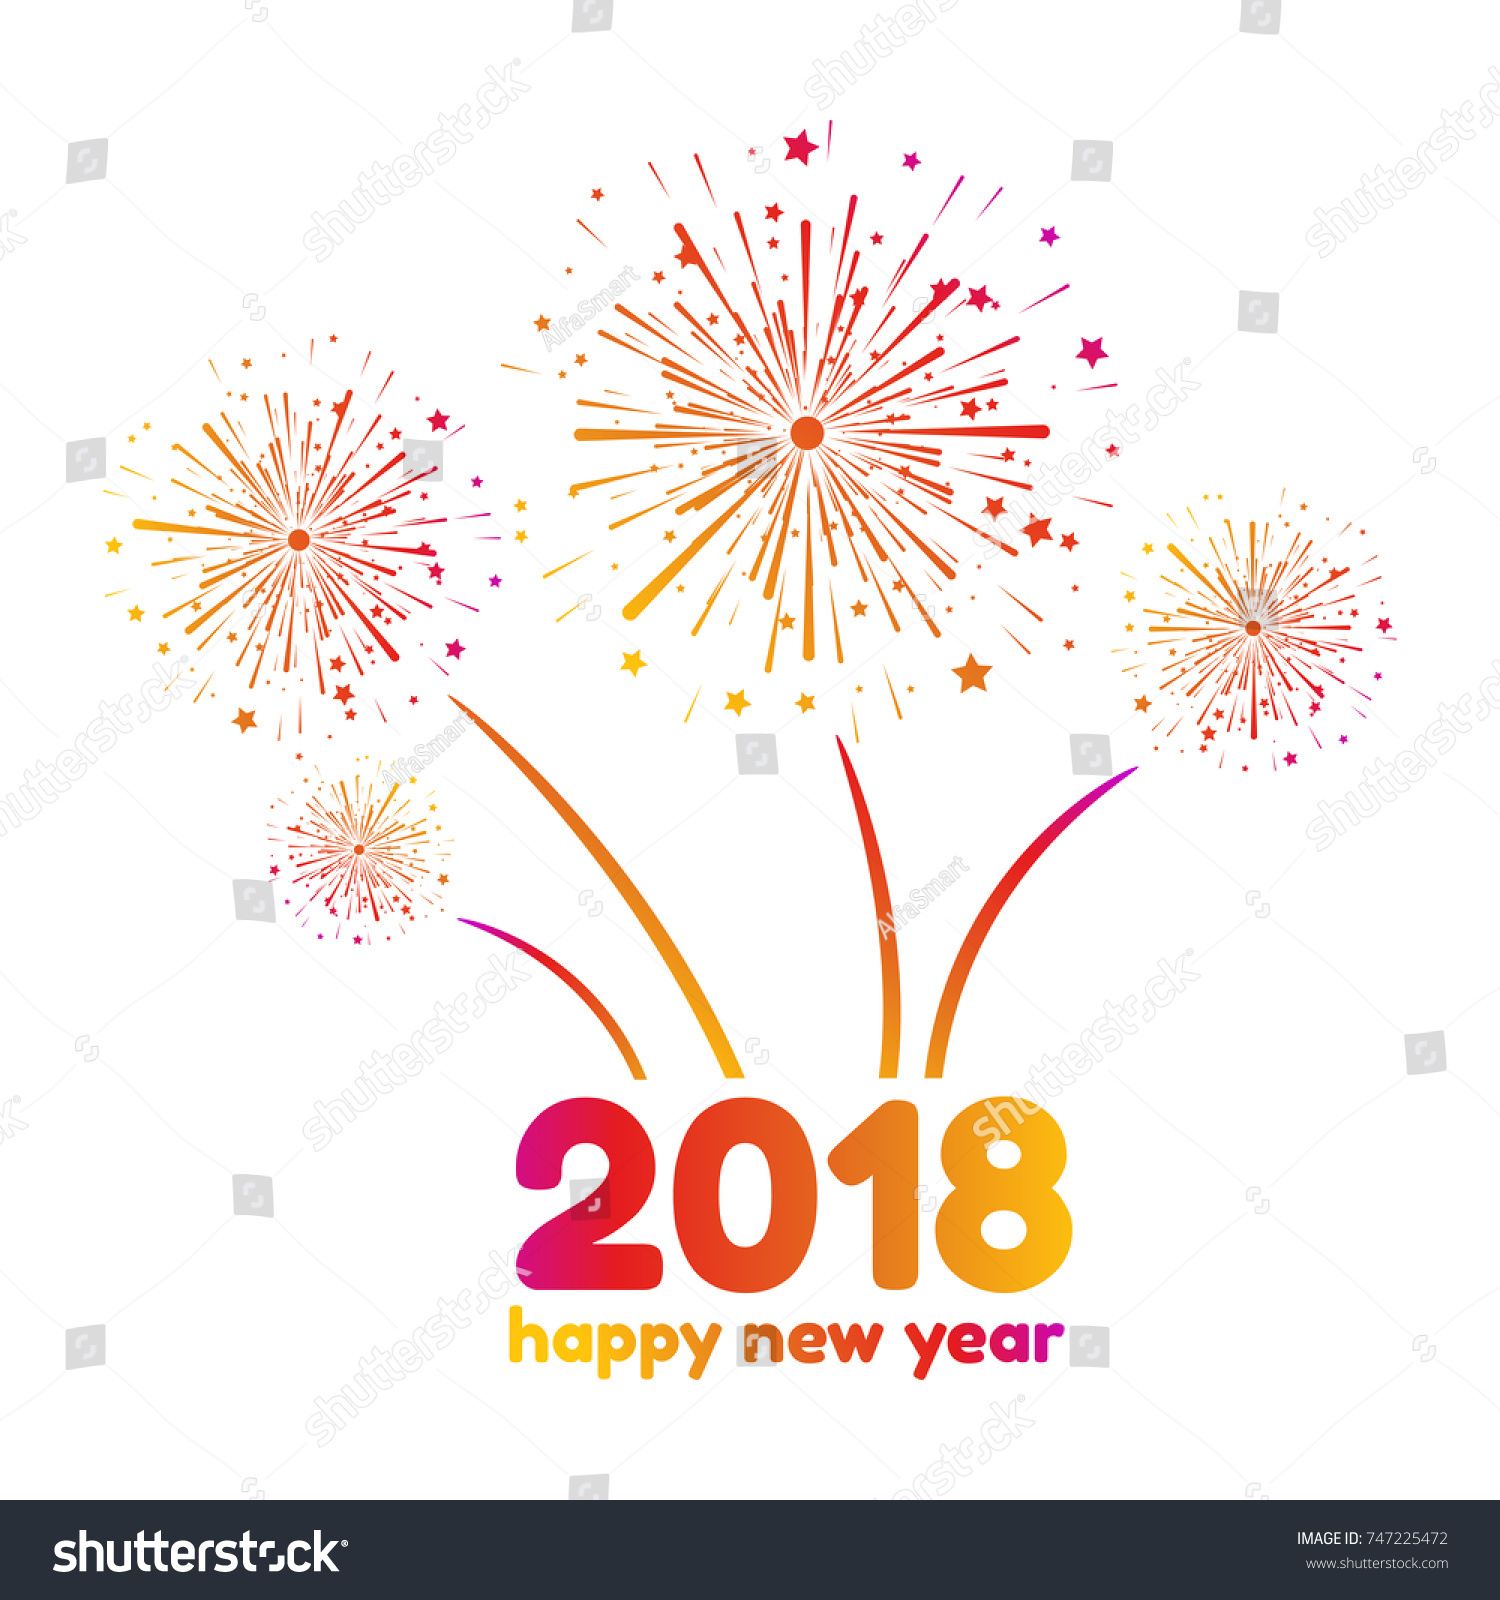 vector illustration of happy new year 2018 colorful fireworks on a white background